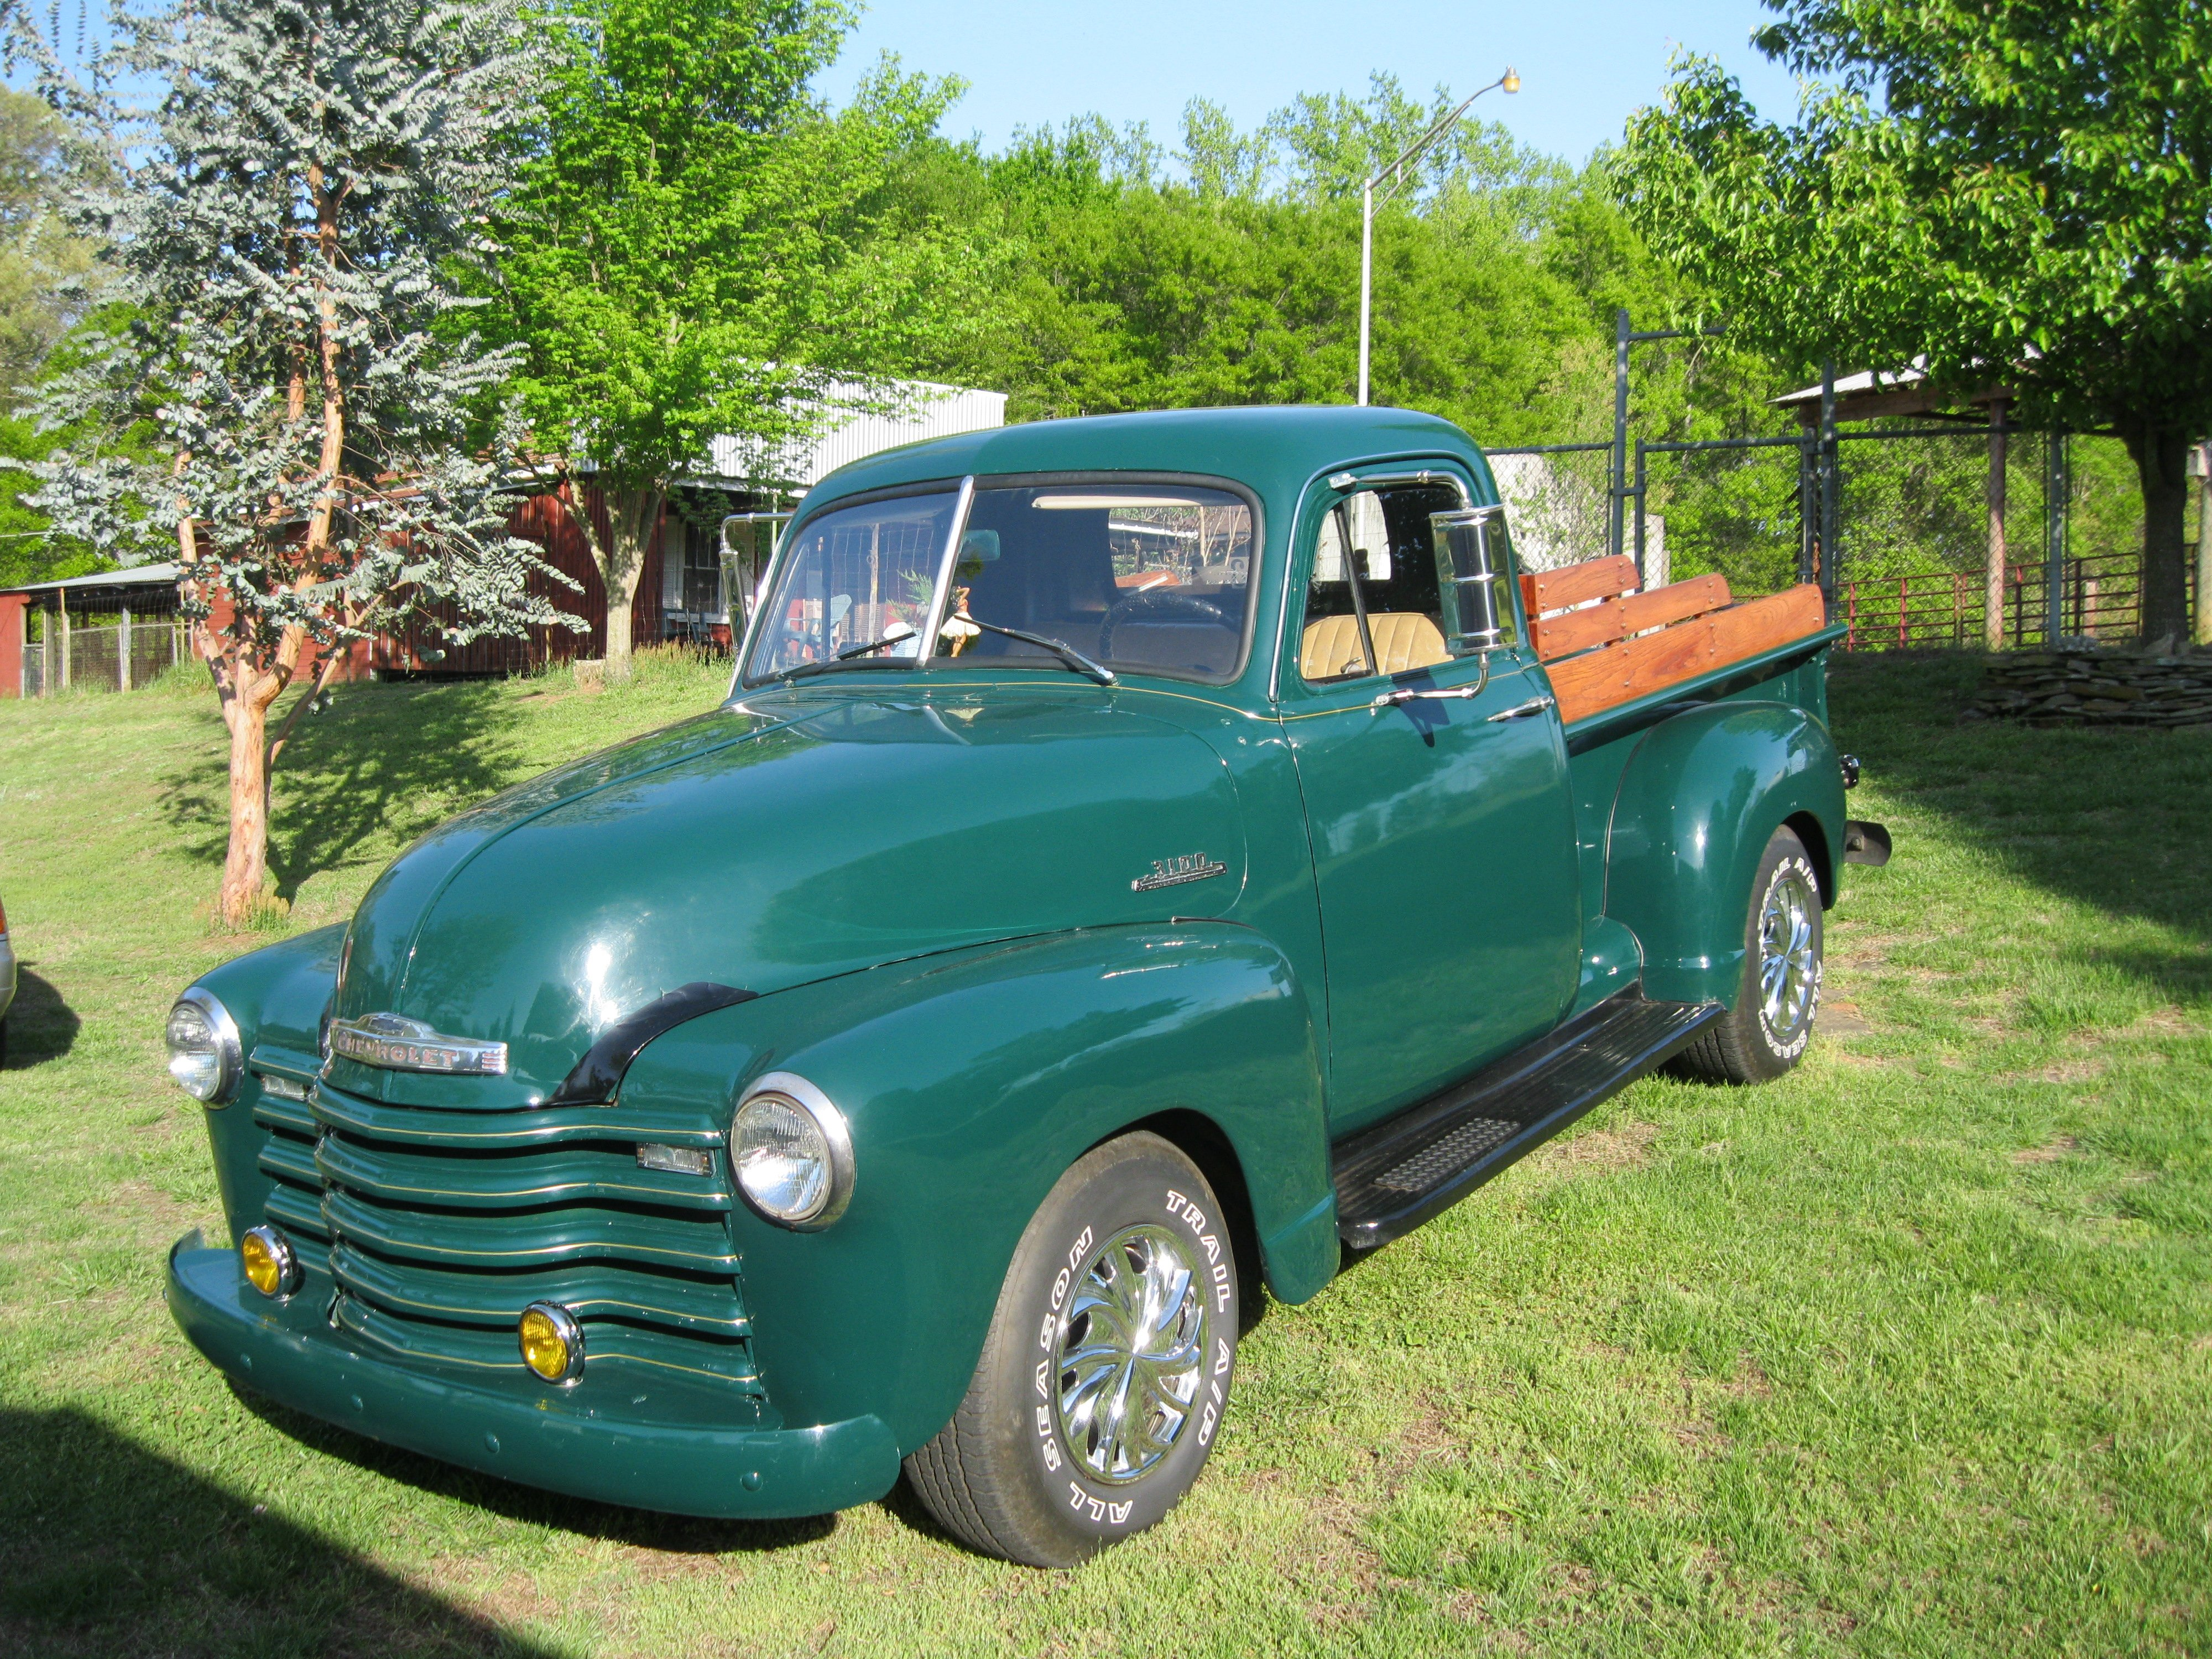 Grady S 1953 Chevy Truck Car Lovers Direct